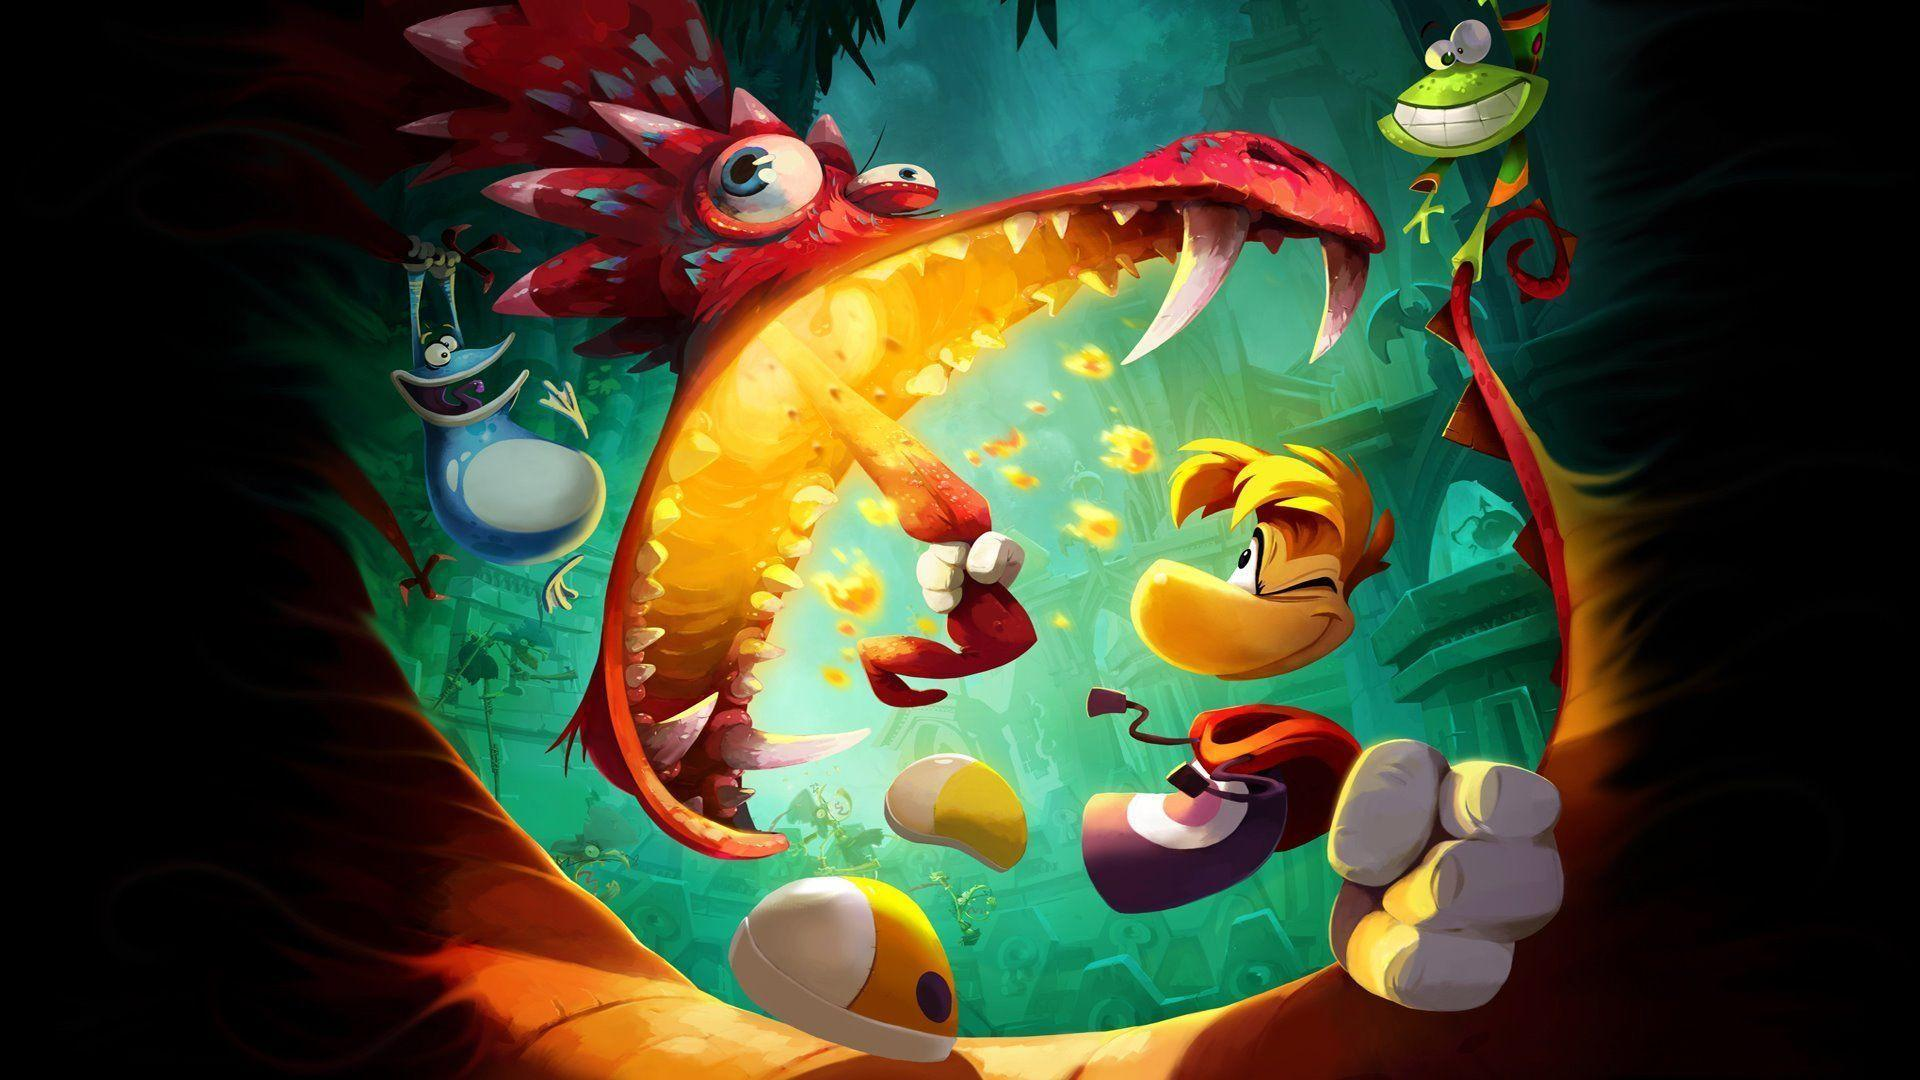 Rayman Legends Computer Wallpapers, Desktop Backgrounds 1920x1080